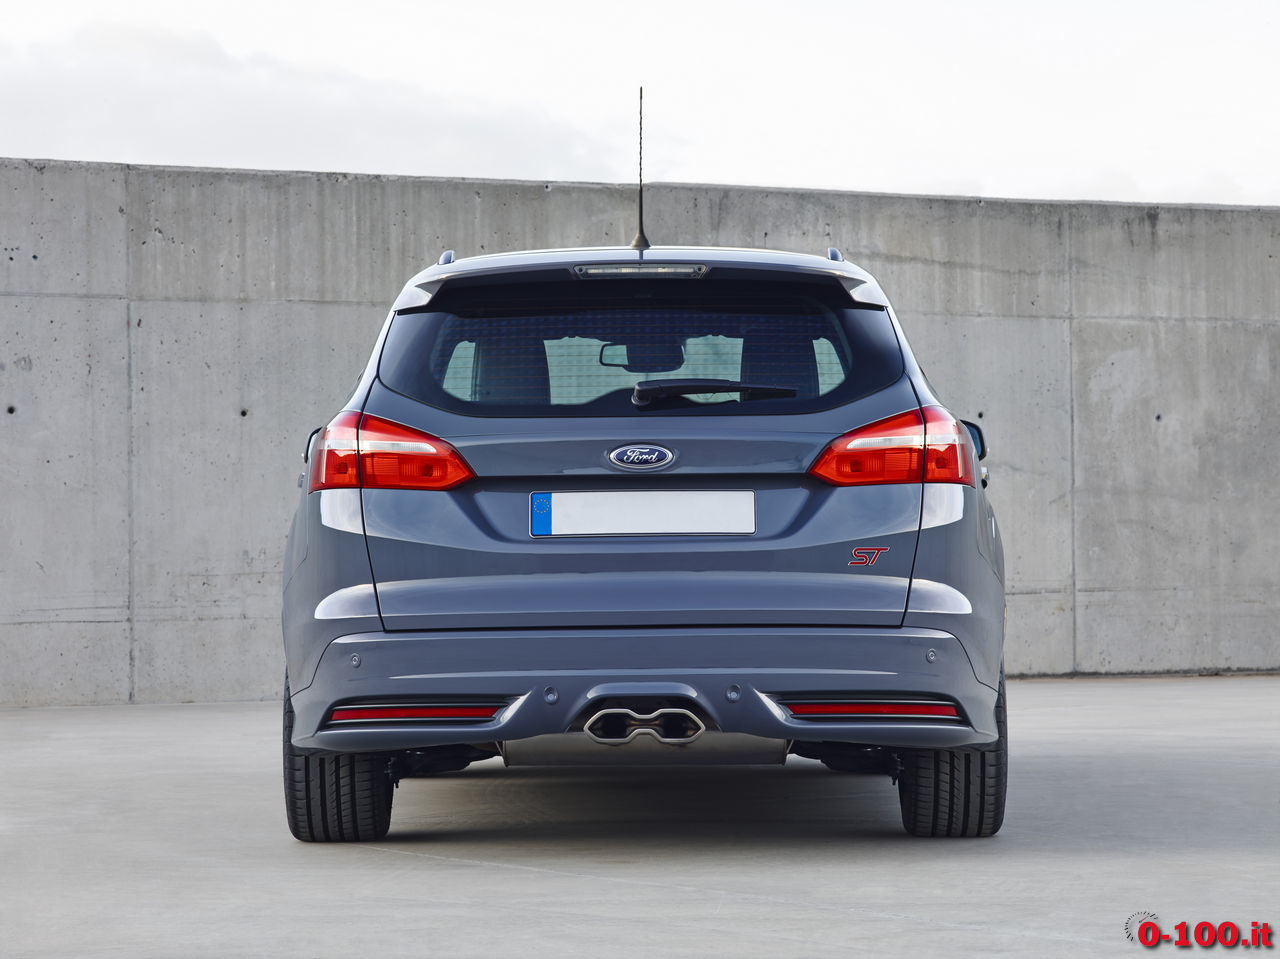 test-drive-ford-focus-dci-st-station-wagon_0-100_25